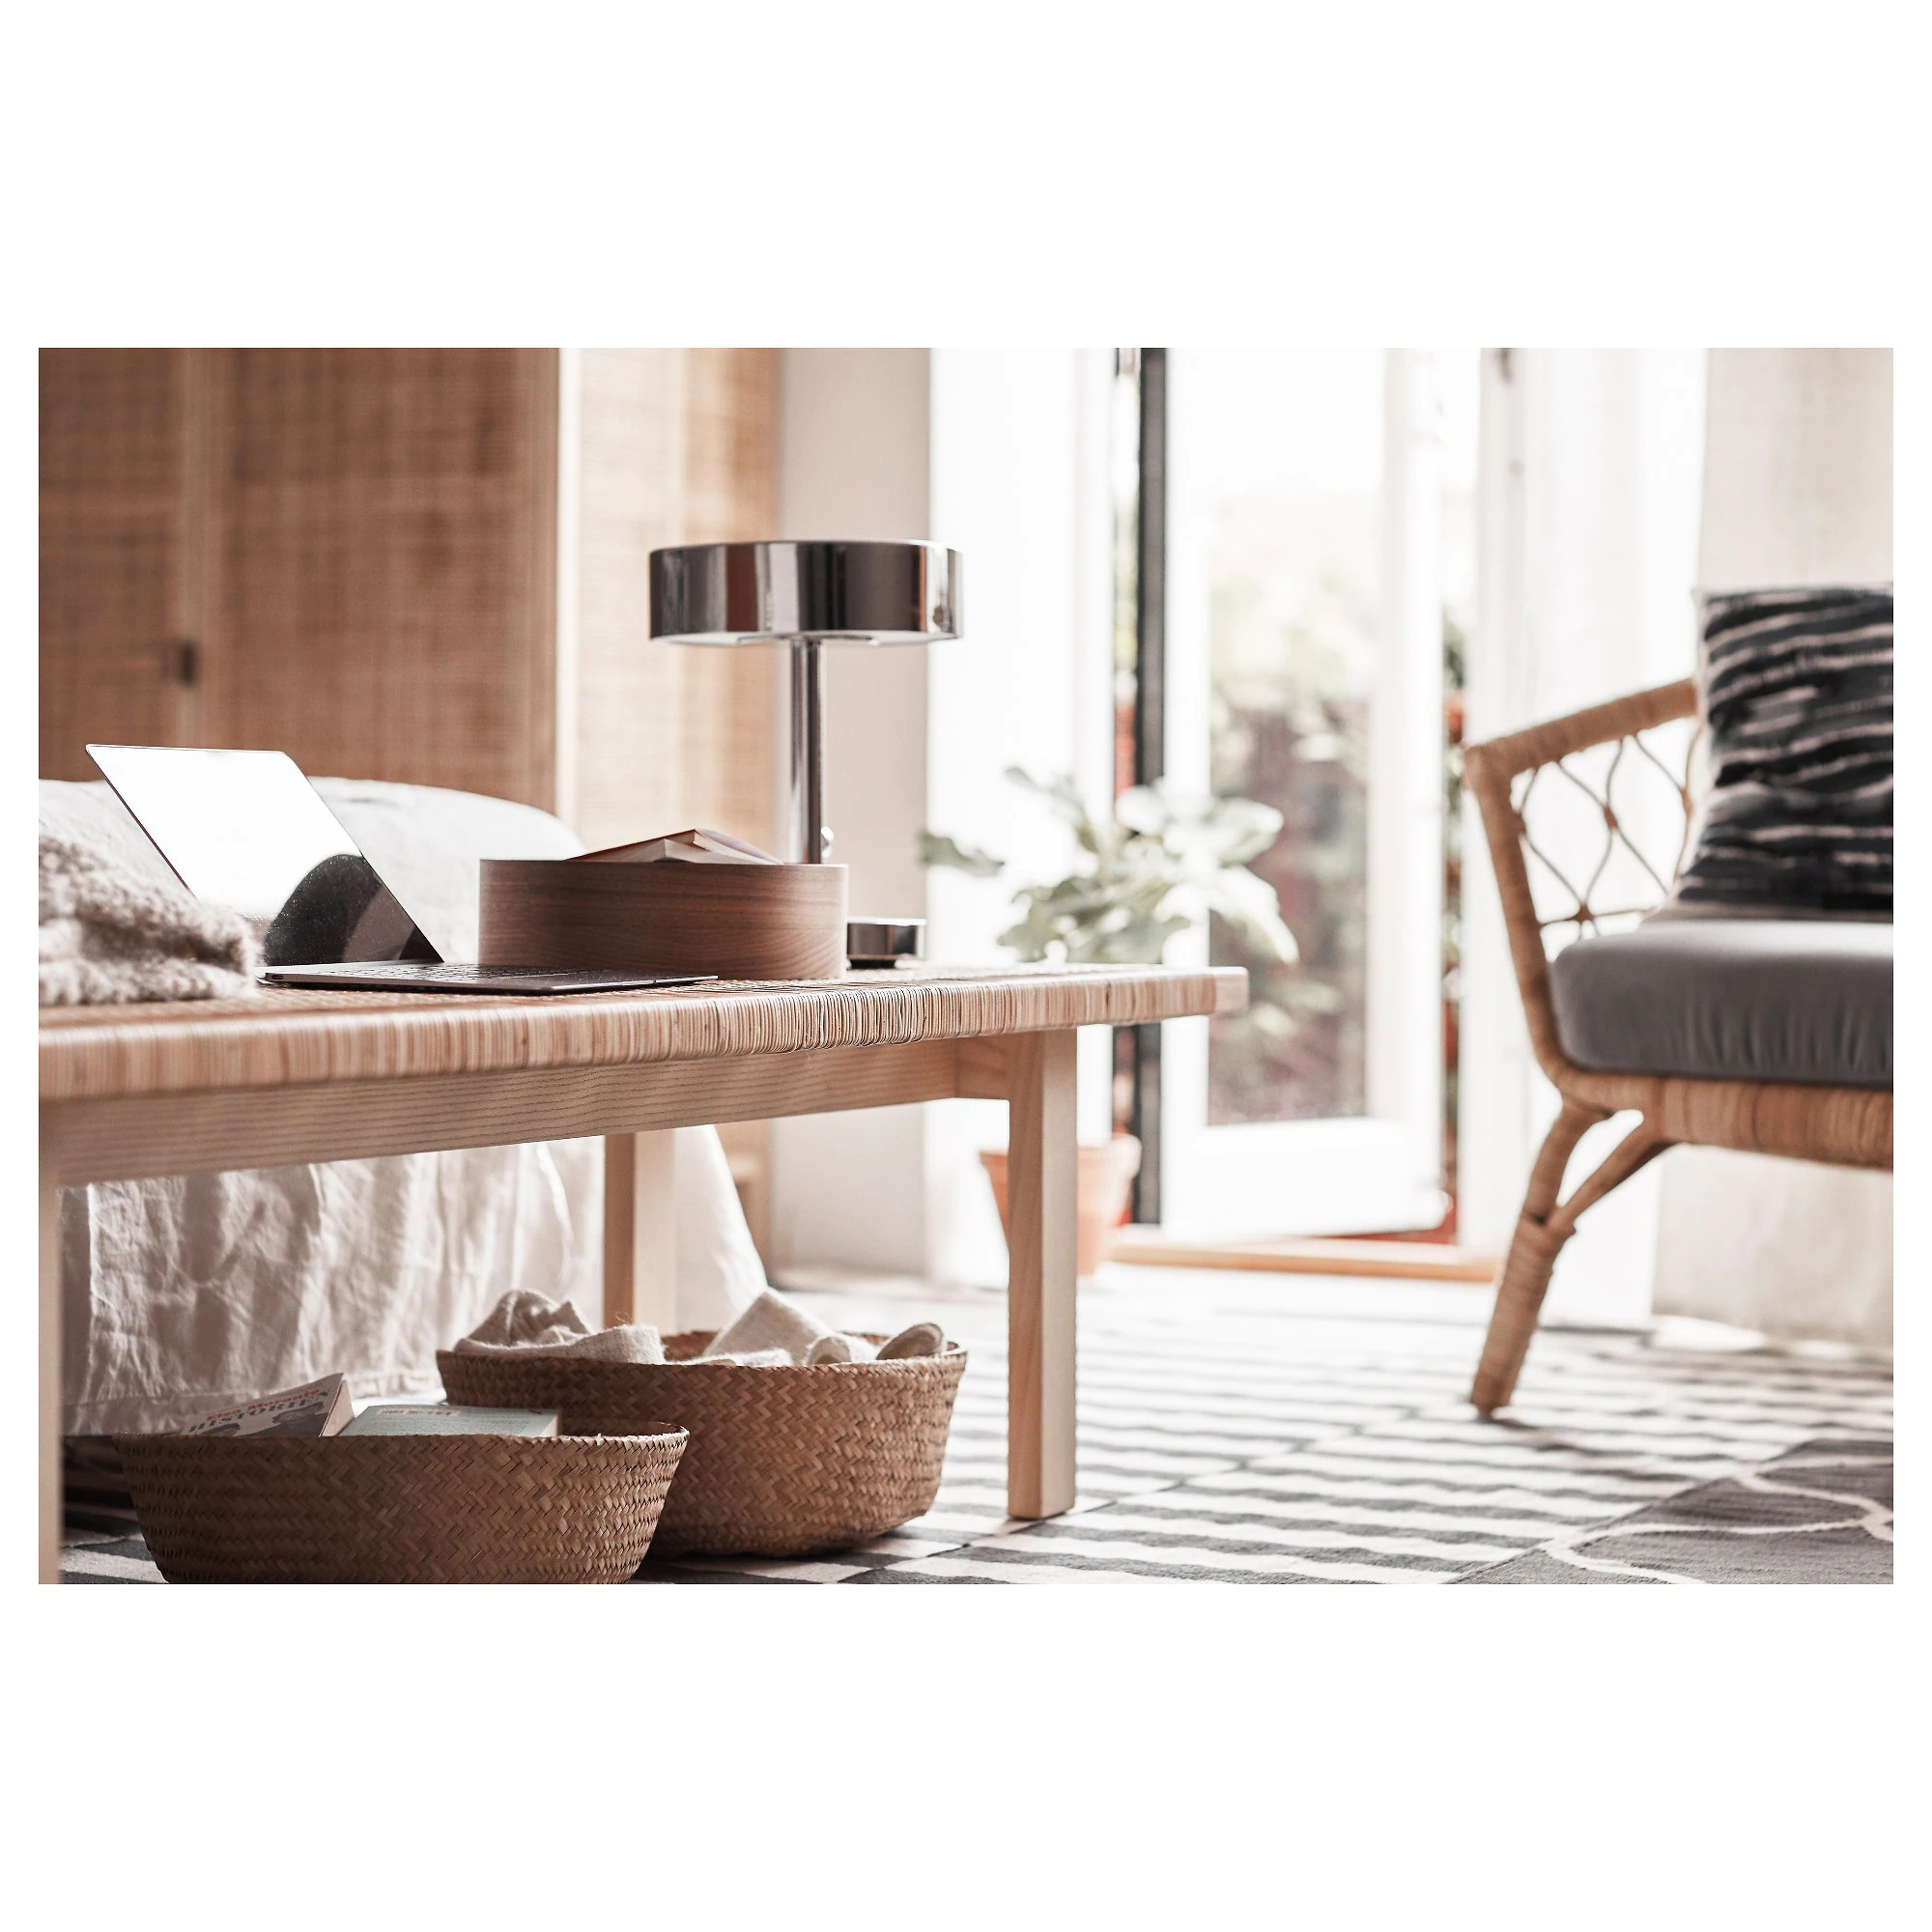 Ikea Couchtisch Stockholm Stockholm 2017 Coffee Table Rattan Ash